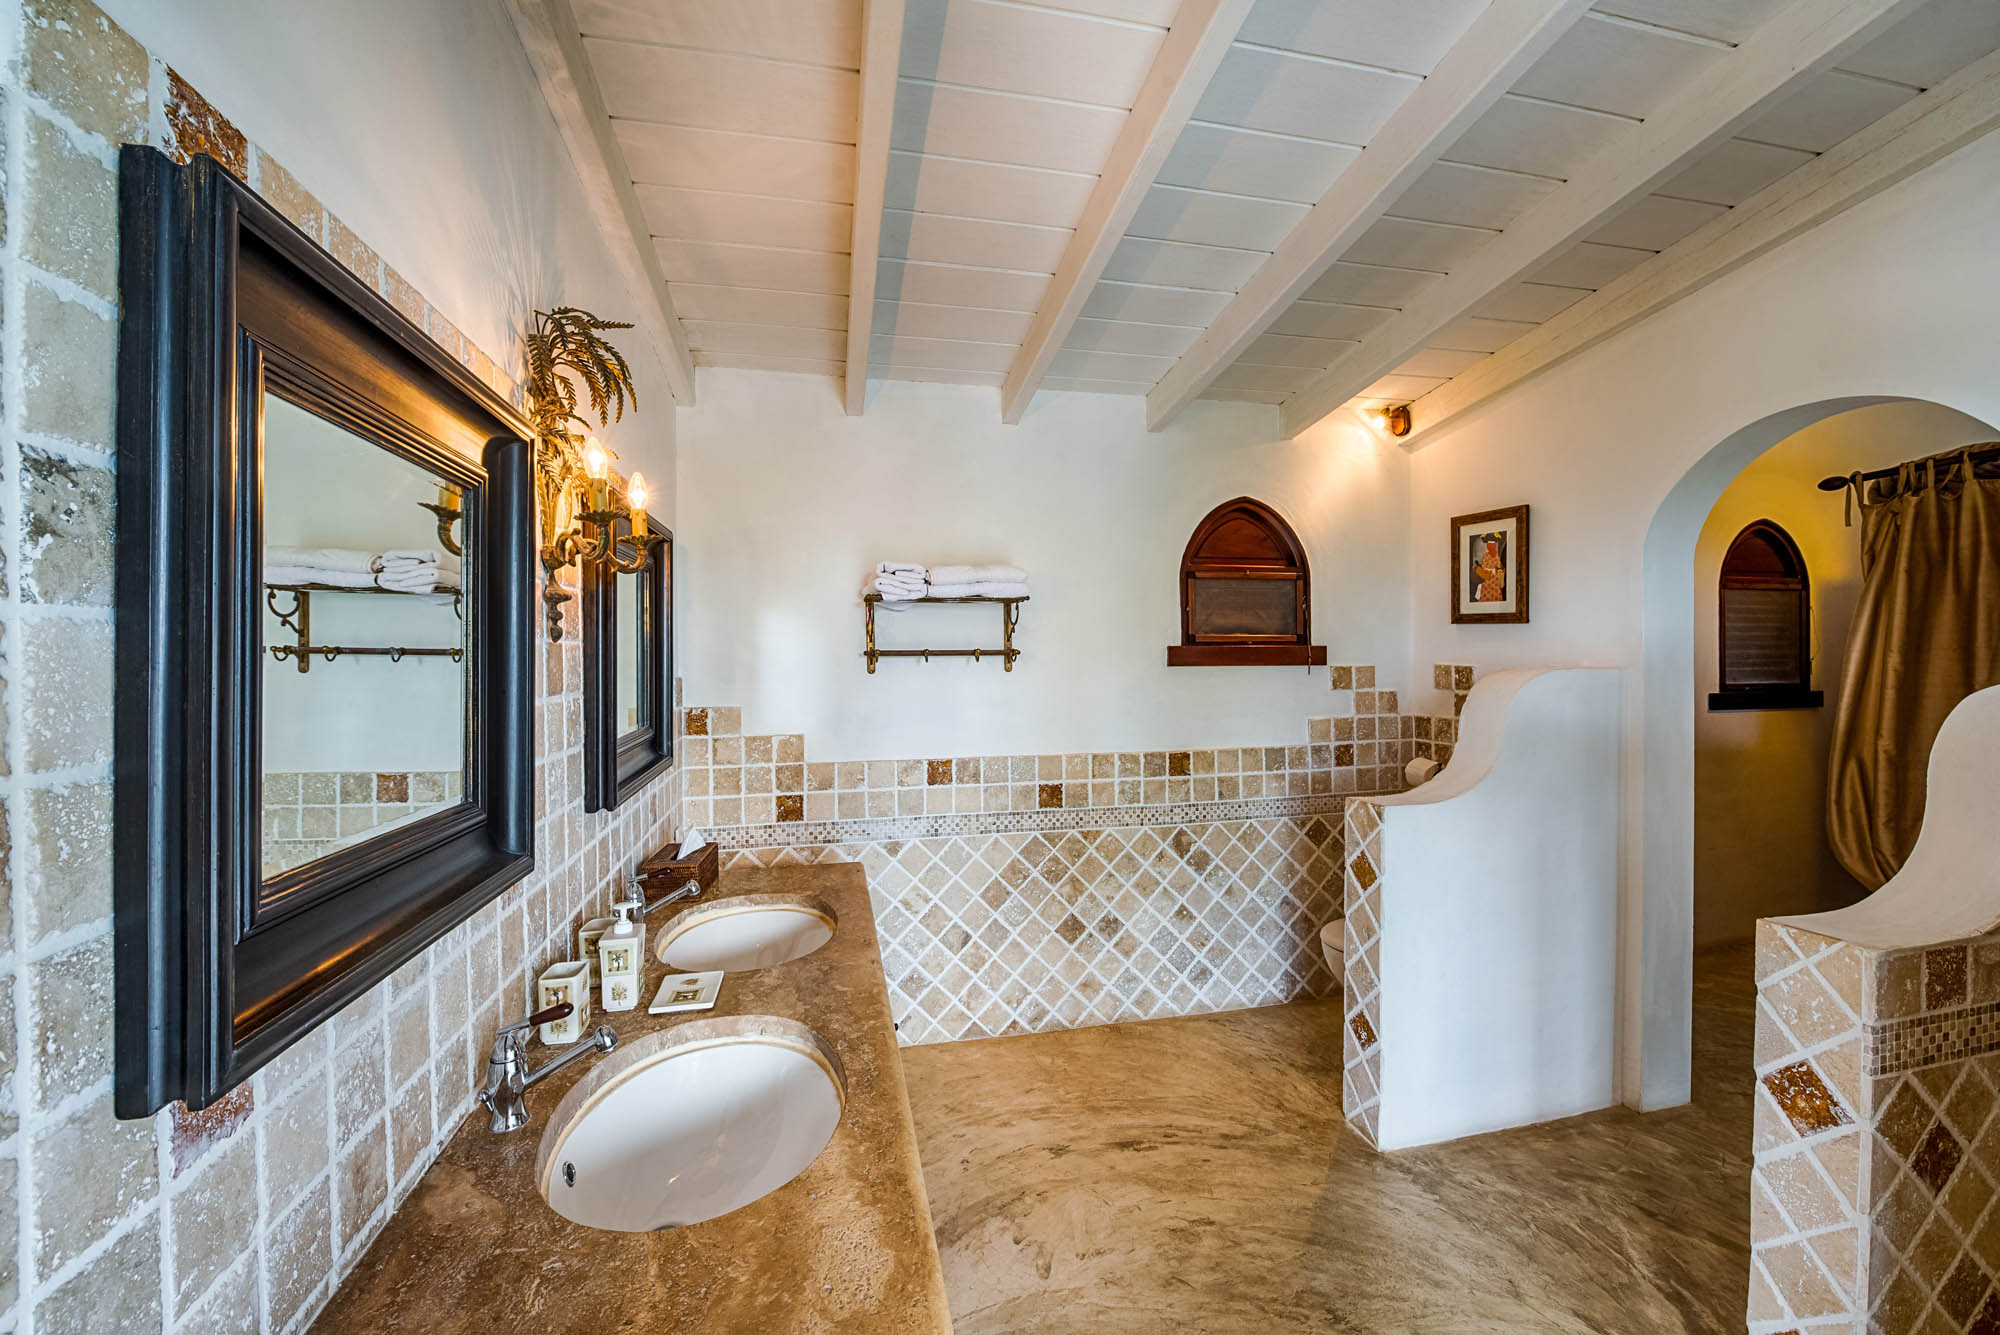 This Terres-Basses luxury villa rental offers private bathrooms for every bedroom suite.